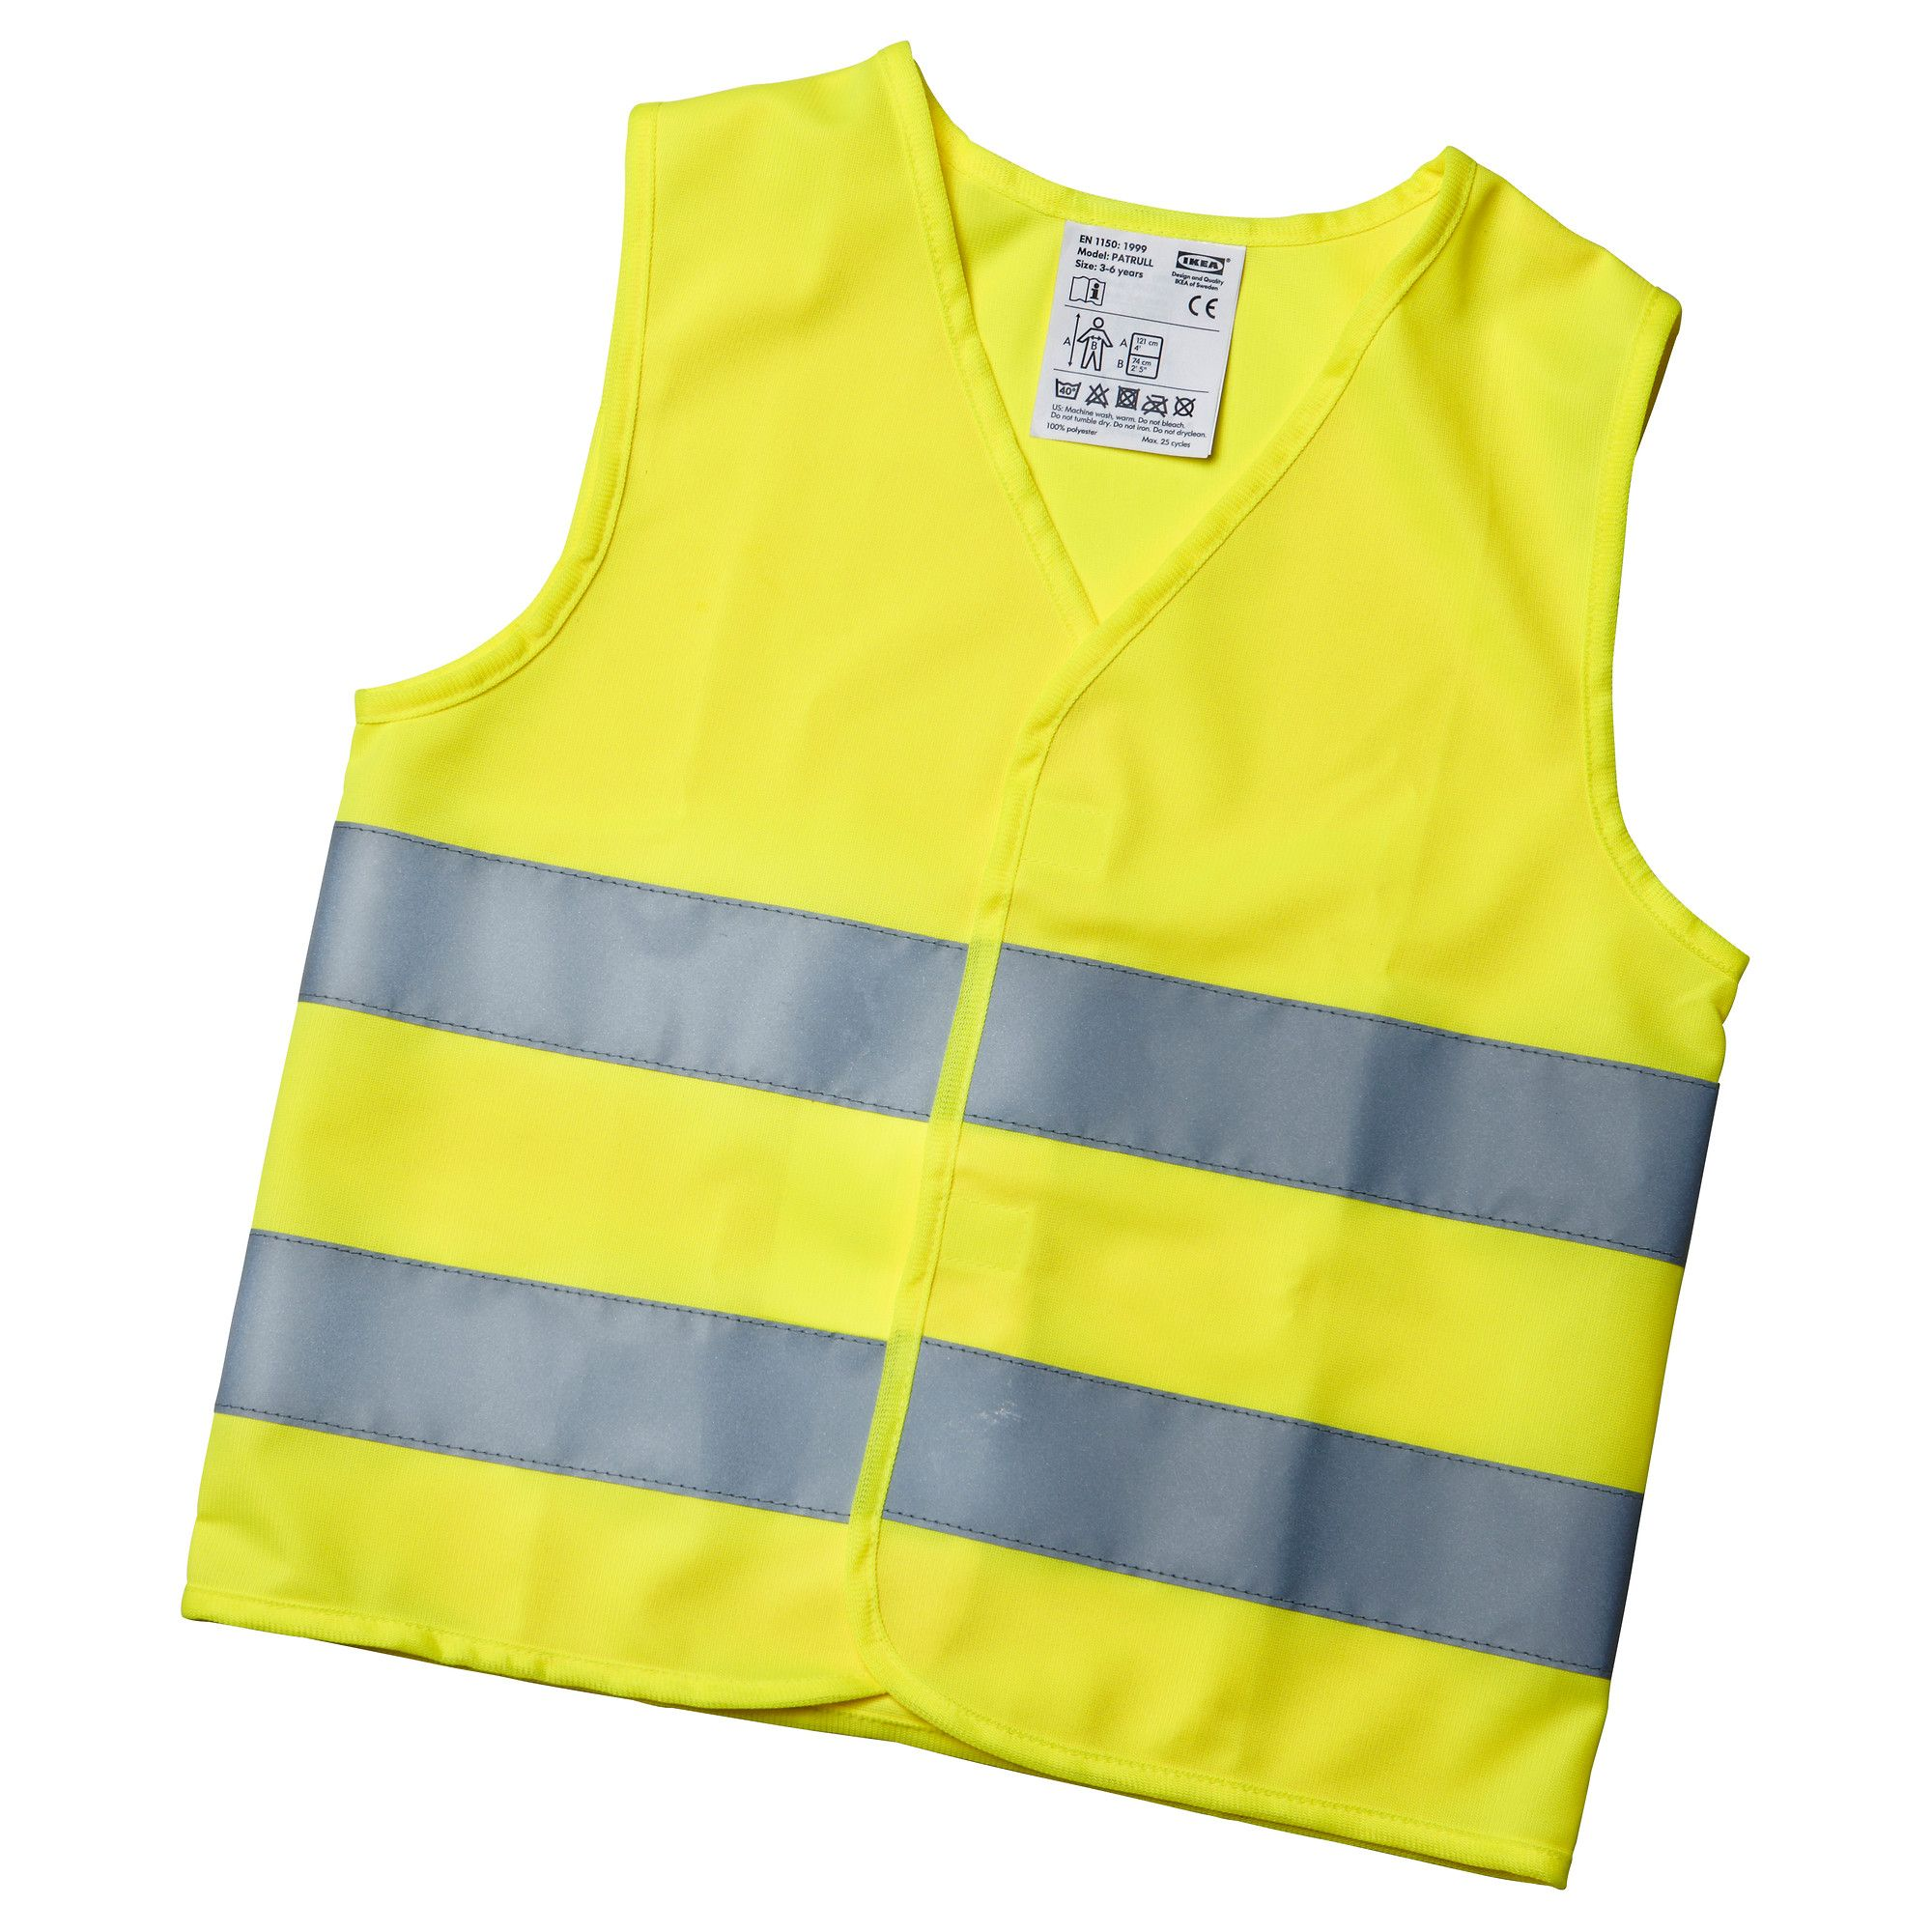 Patrull reflective vest key features reflective for Ikea safety vest